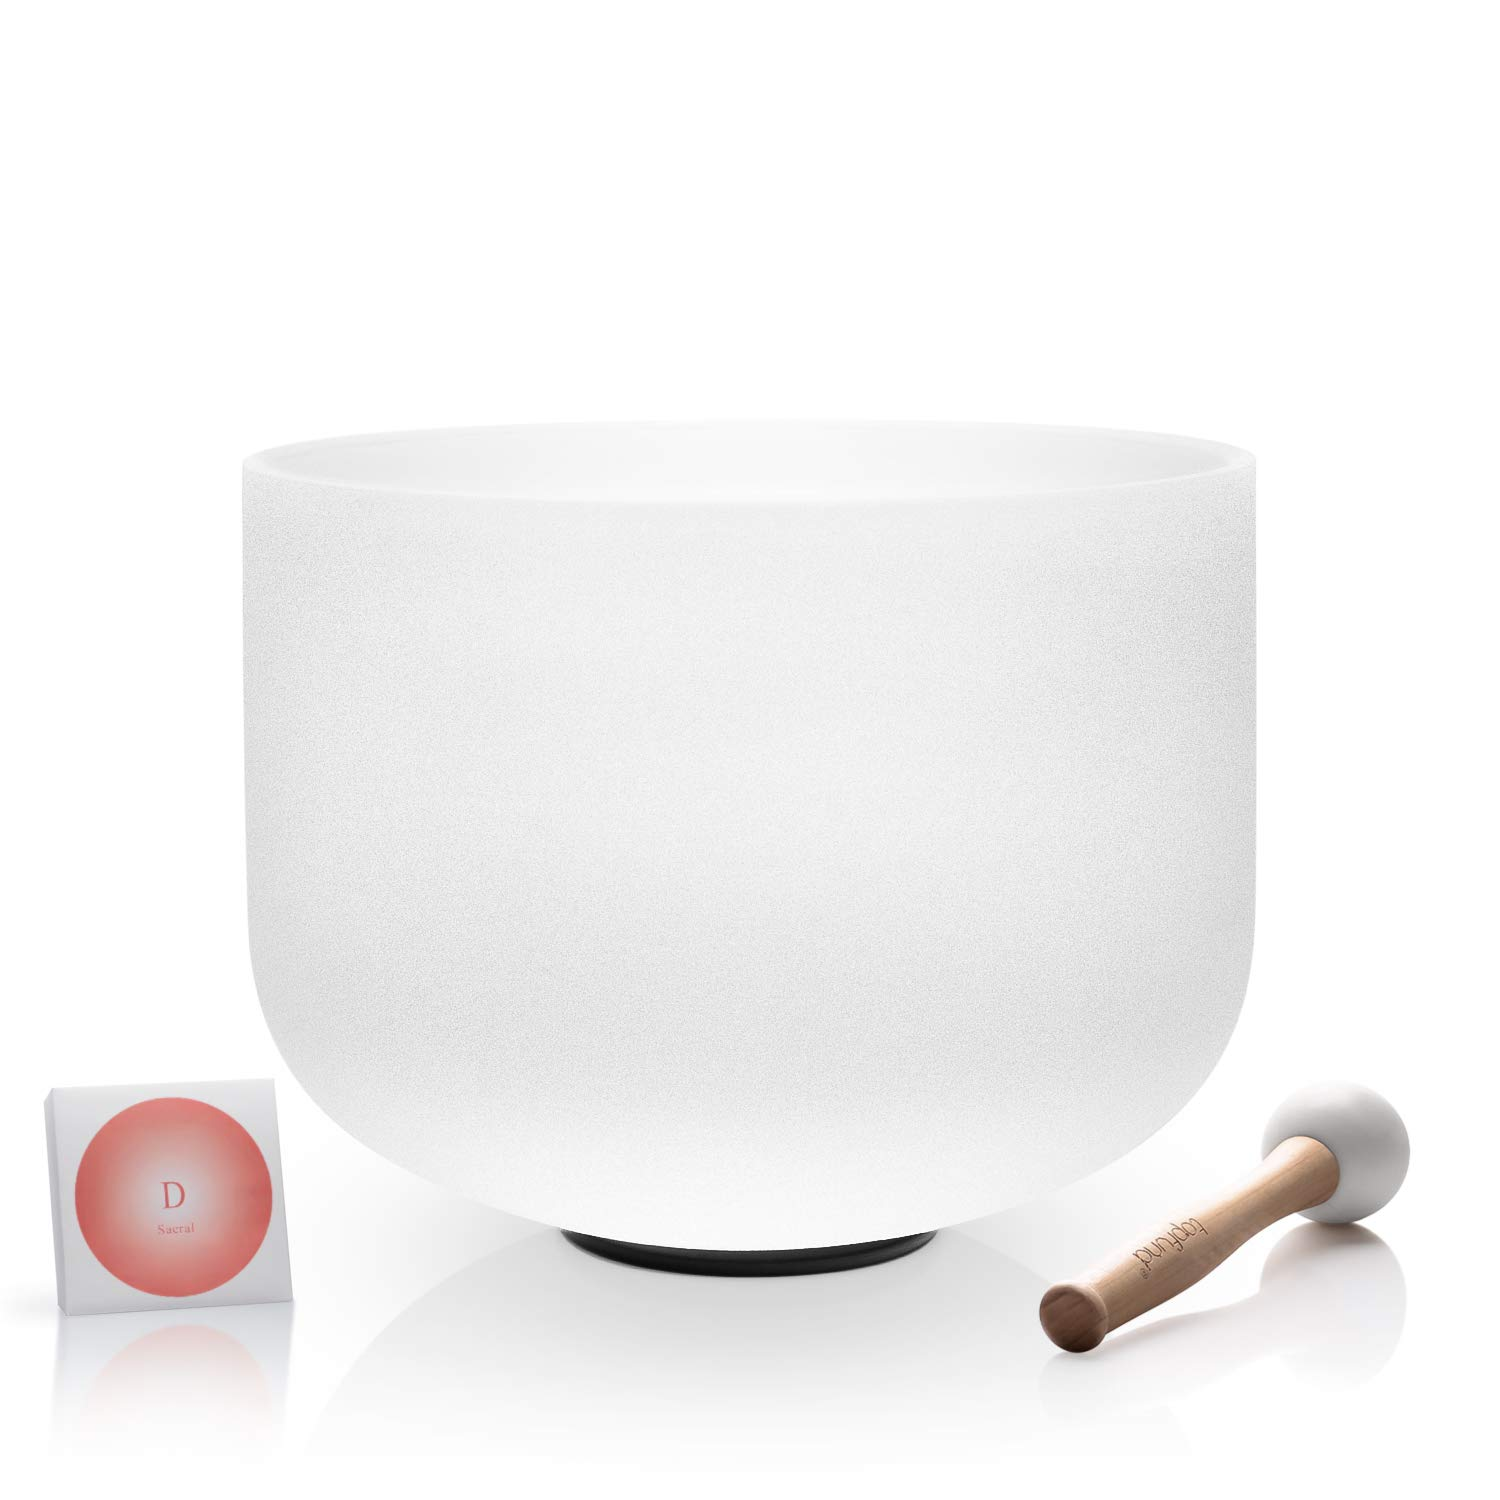 TOPFUND Crystal Singing Bowl 432Hz D Note Sacral Chakra 12 inch (O Ring and Mallet Included)